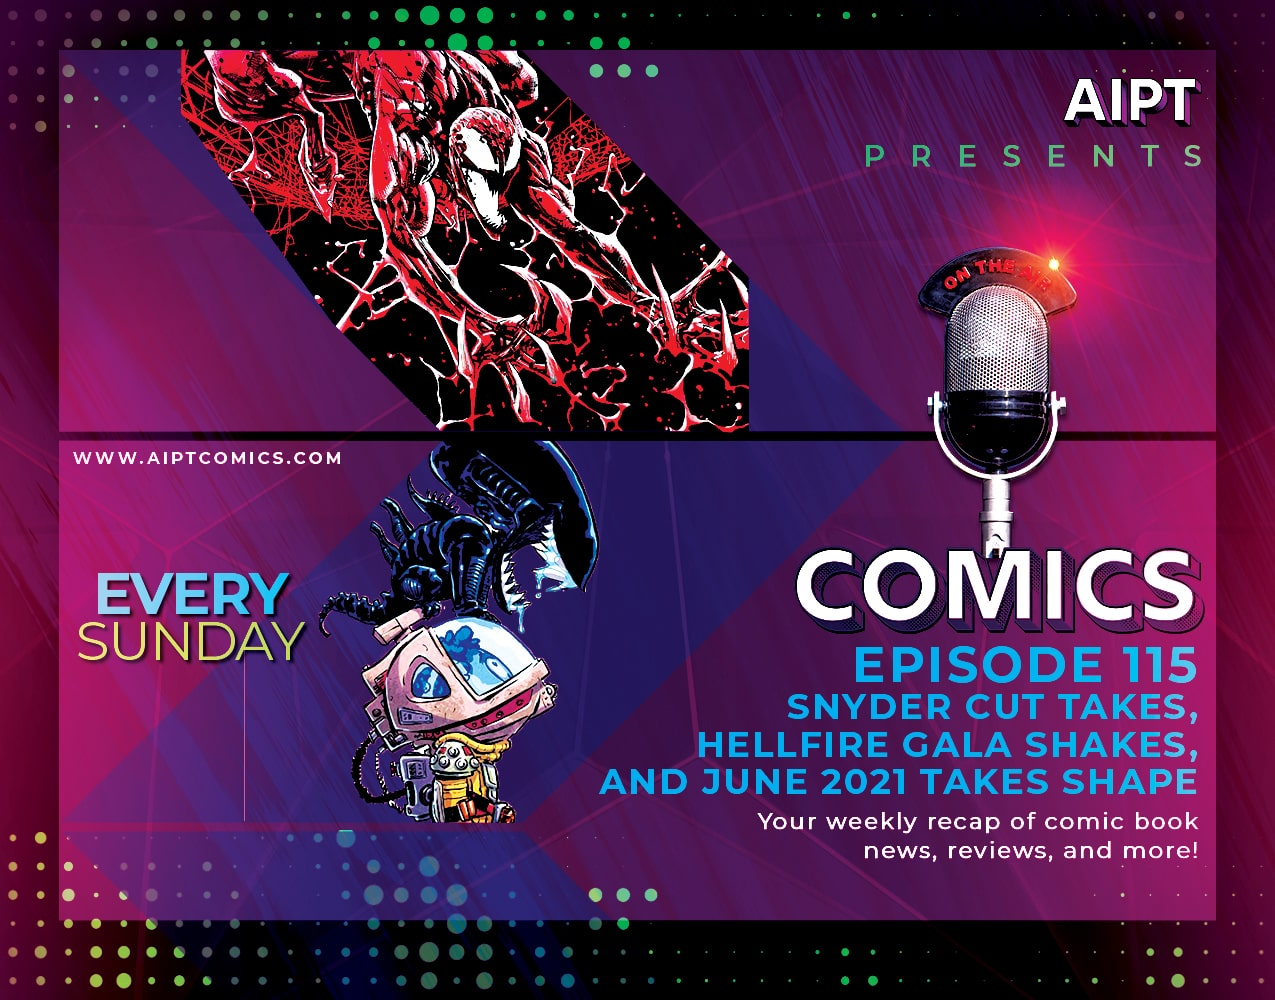 AIPT Comics Podcast Episode 115: Snyder Cut takes, Hellfire Gala shakes, while June 2021 takes shape